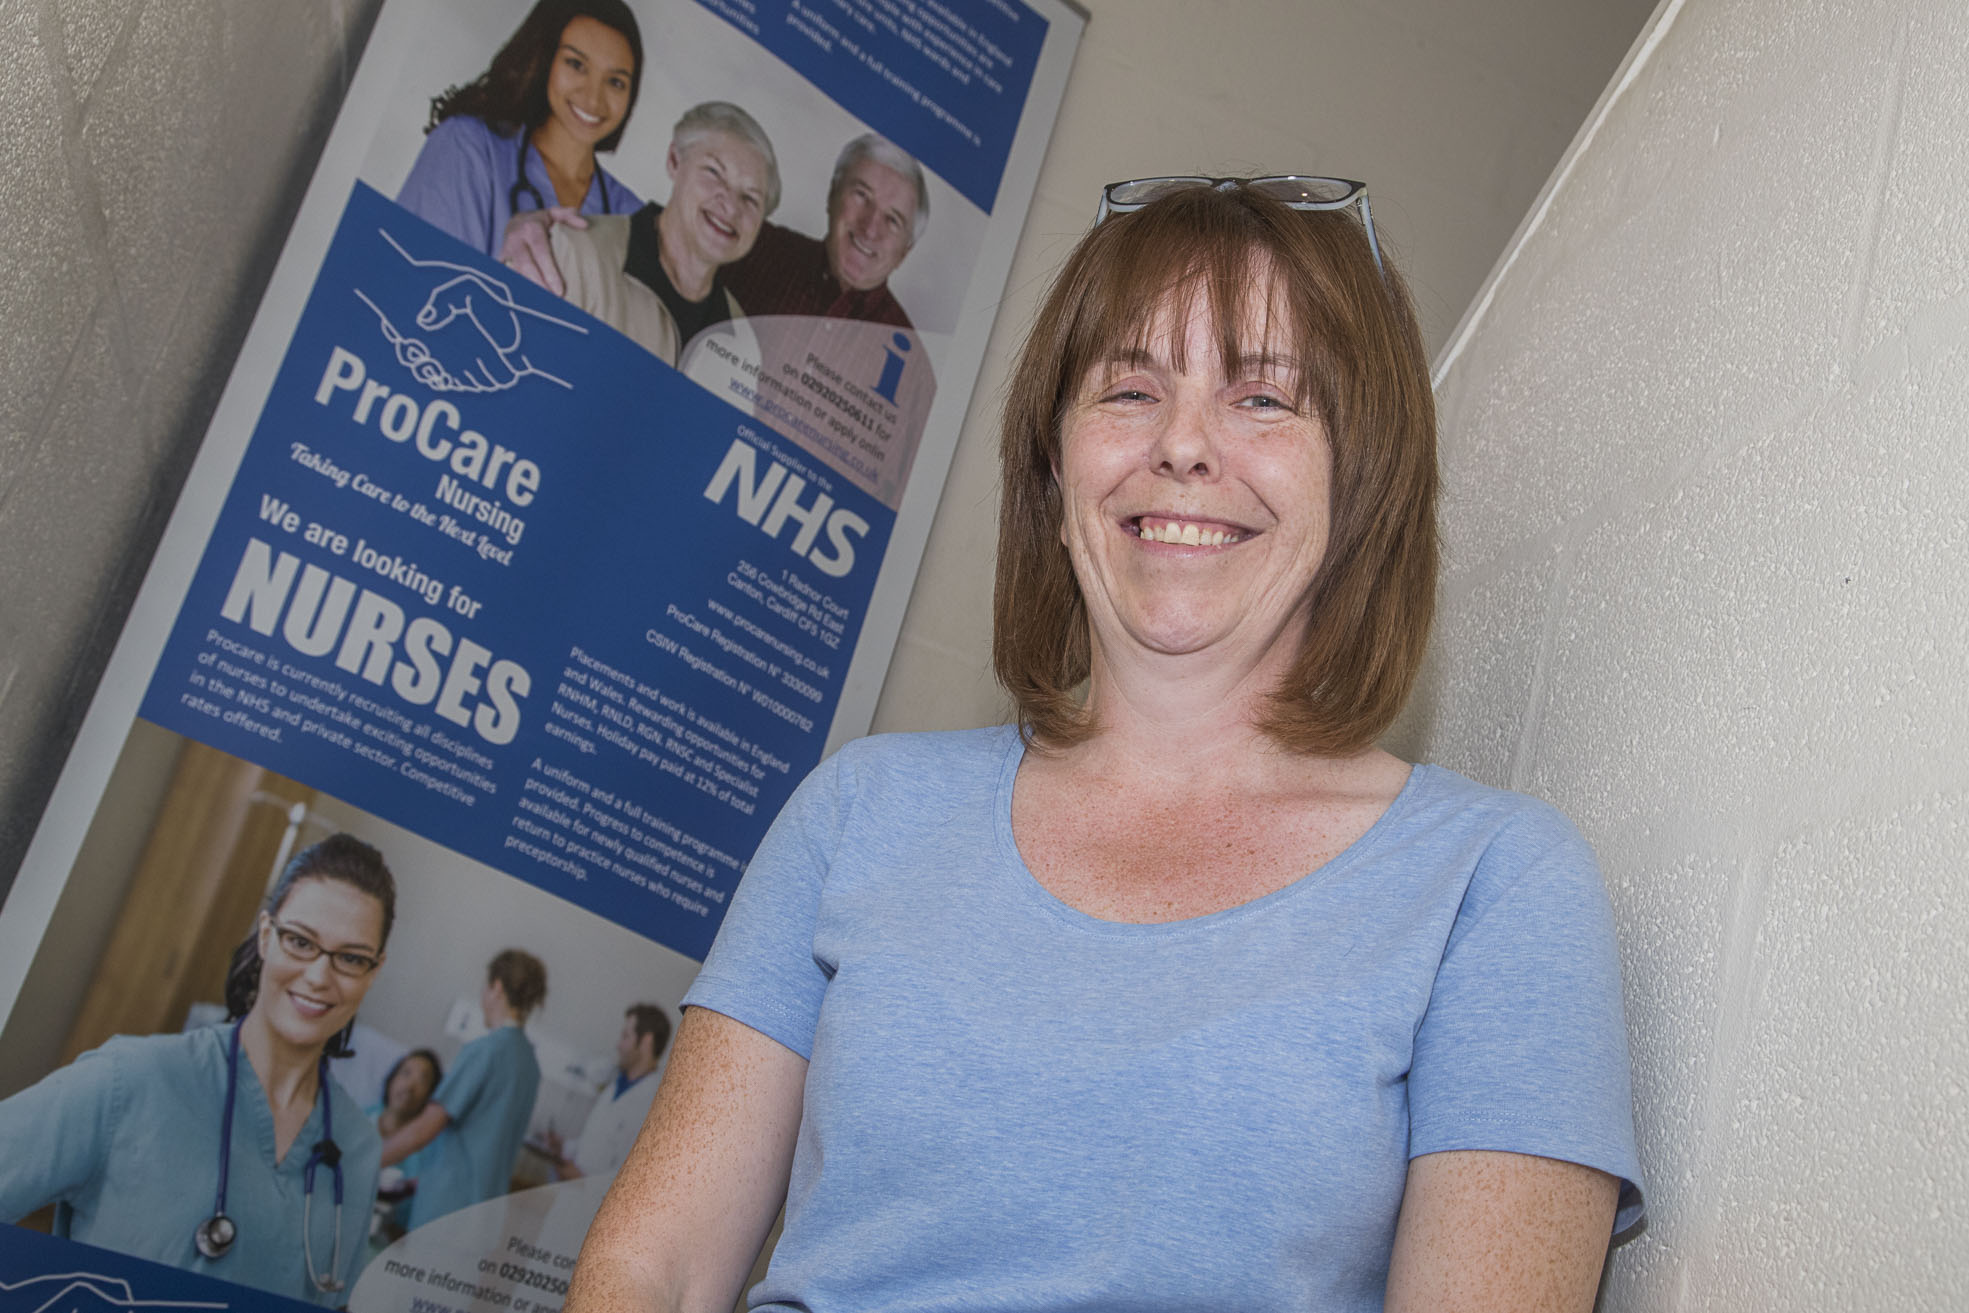 Caring Sara hailed as a role model ahead of Wales Care Awards